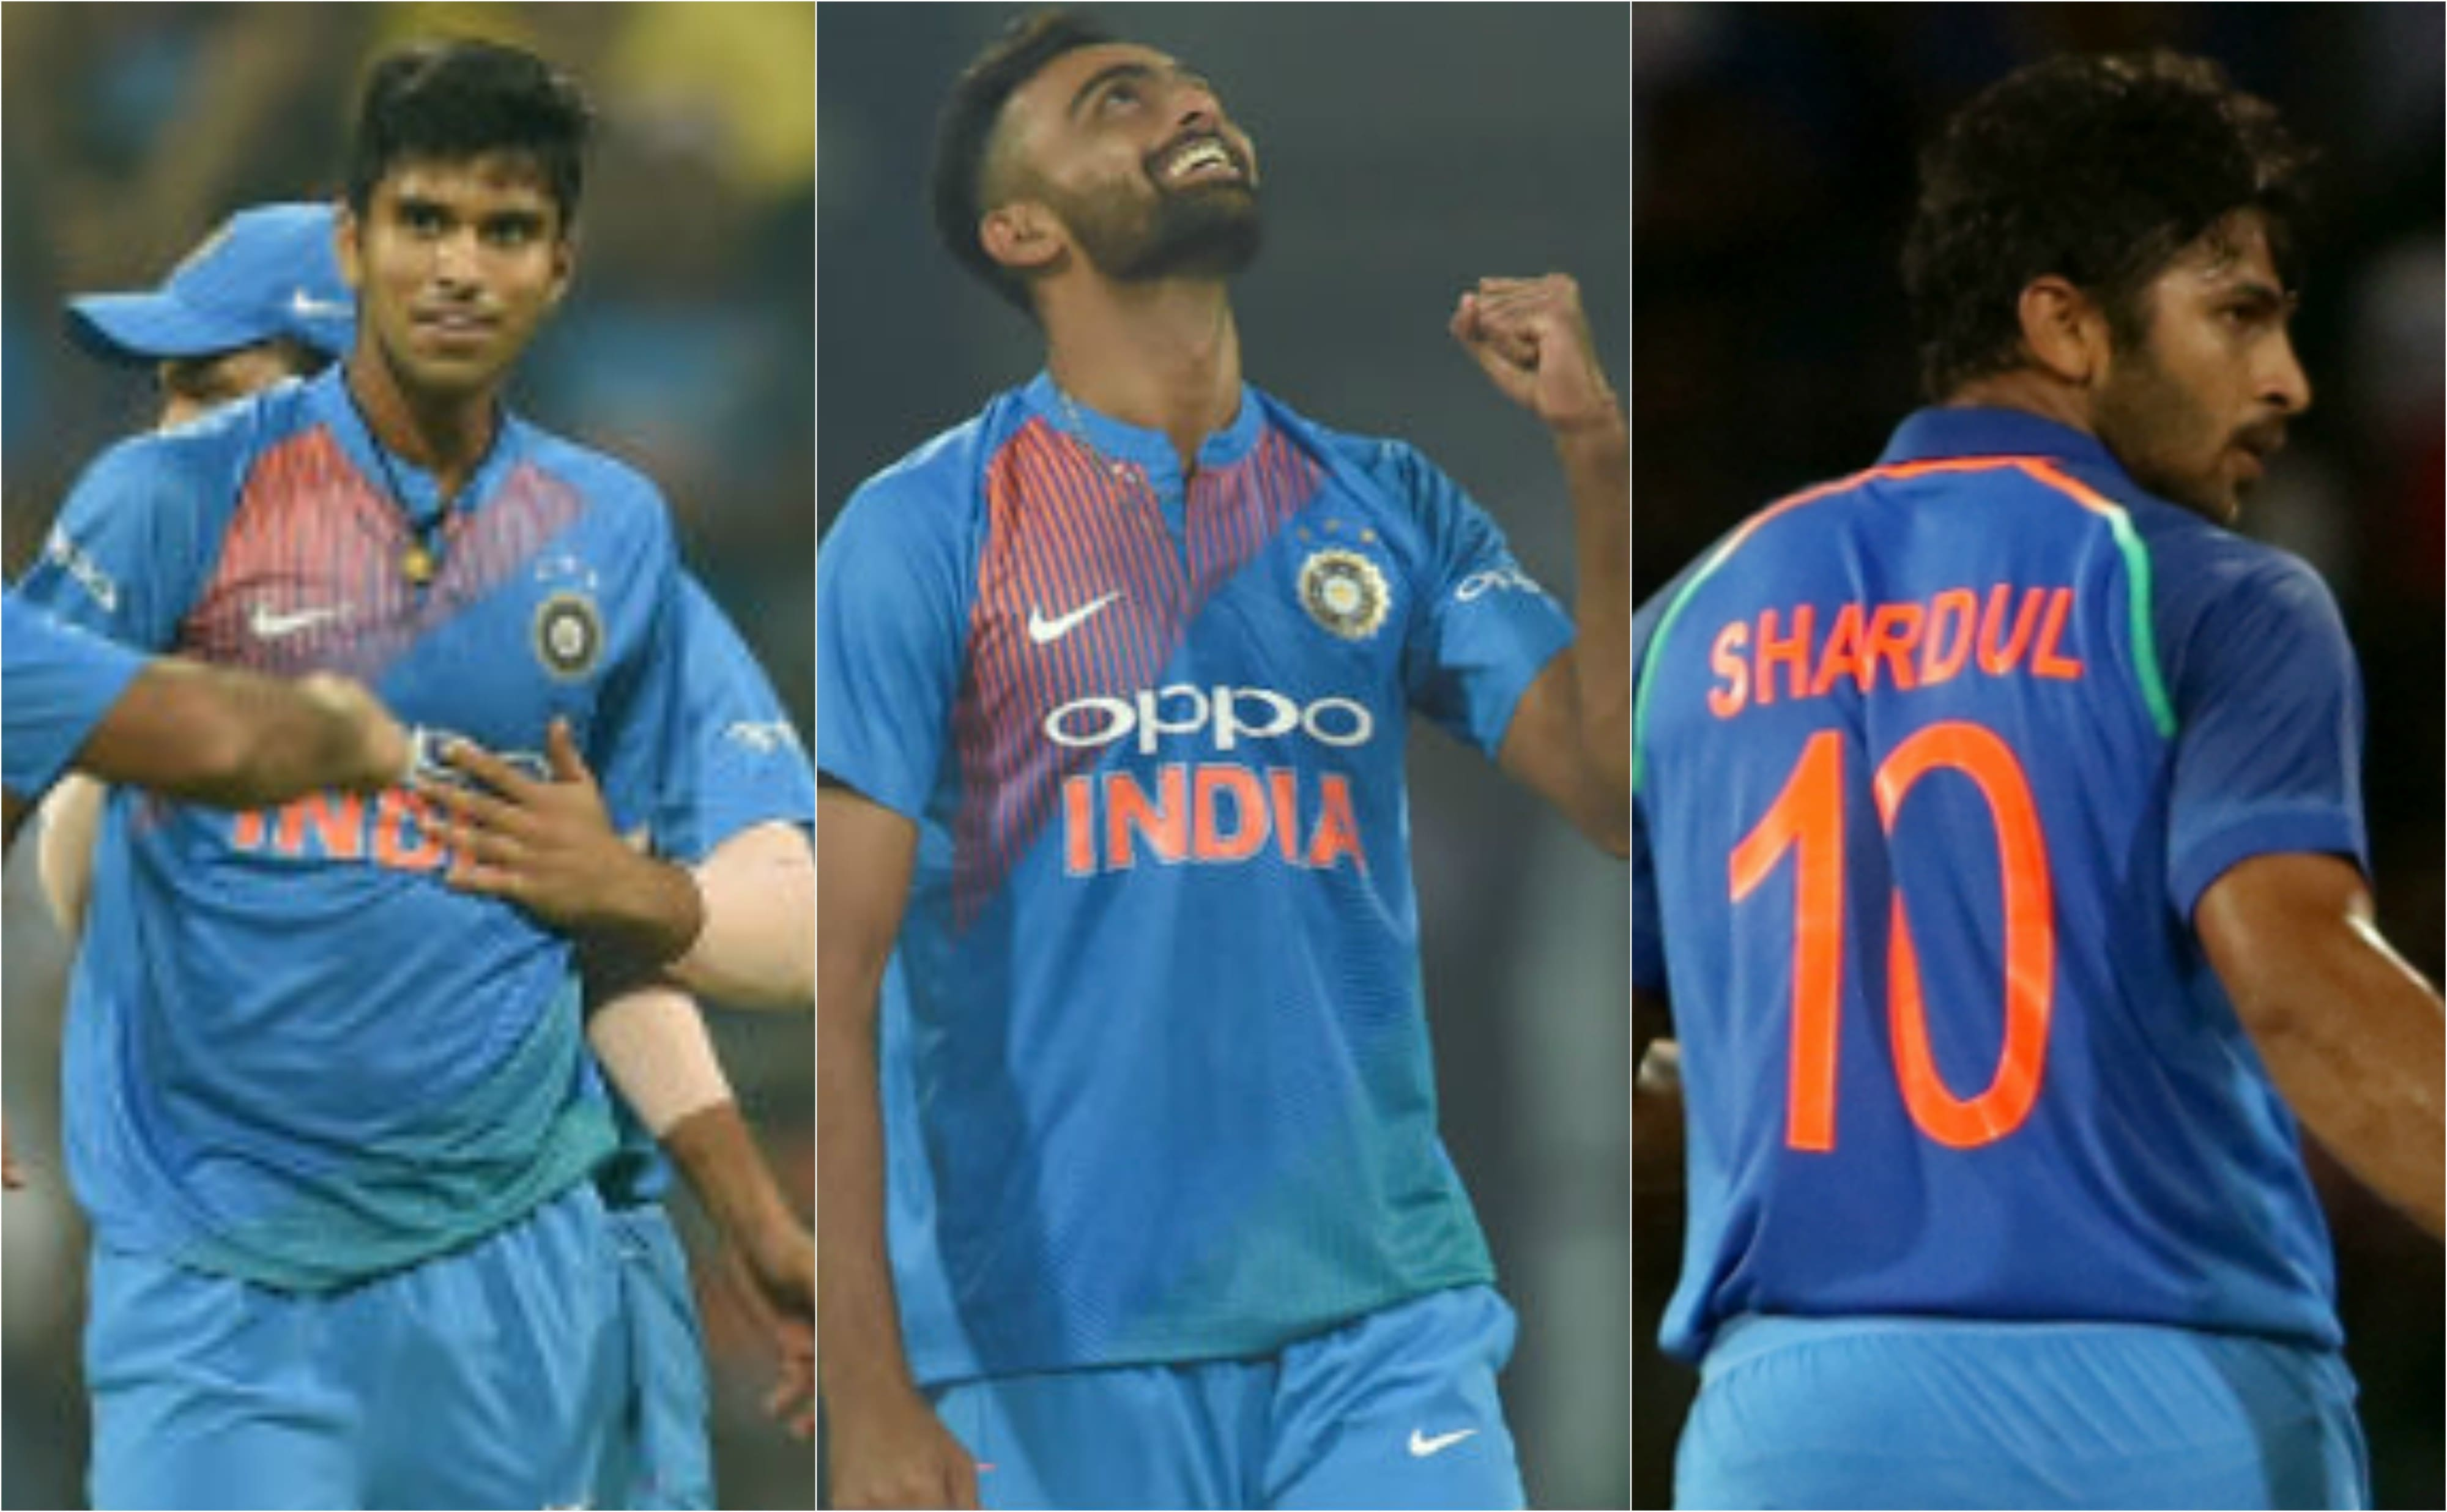 Nidahas Trophy 2018: Team India's young guns to watch out in Sri Lanka